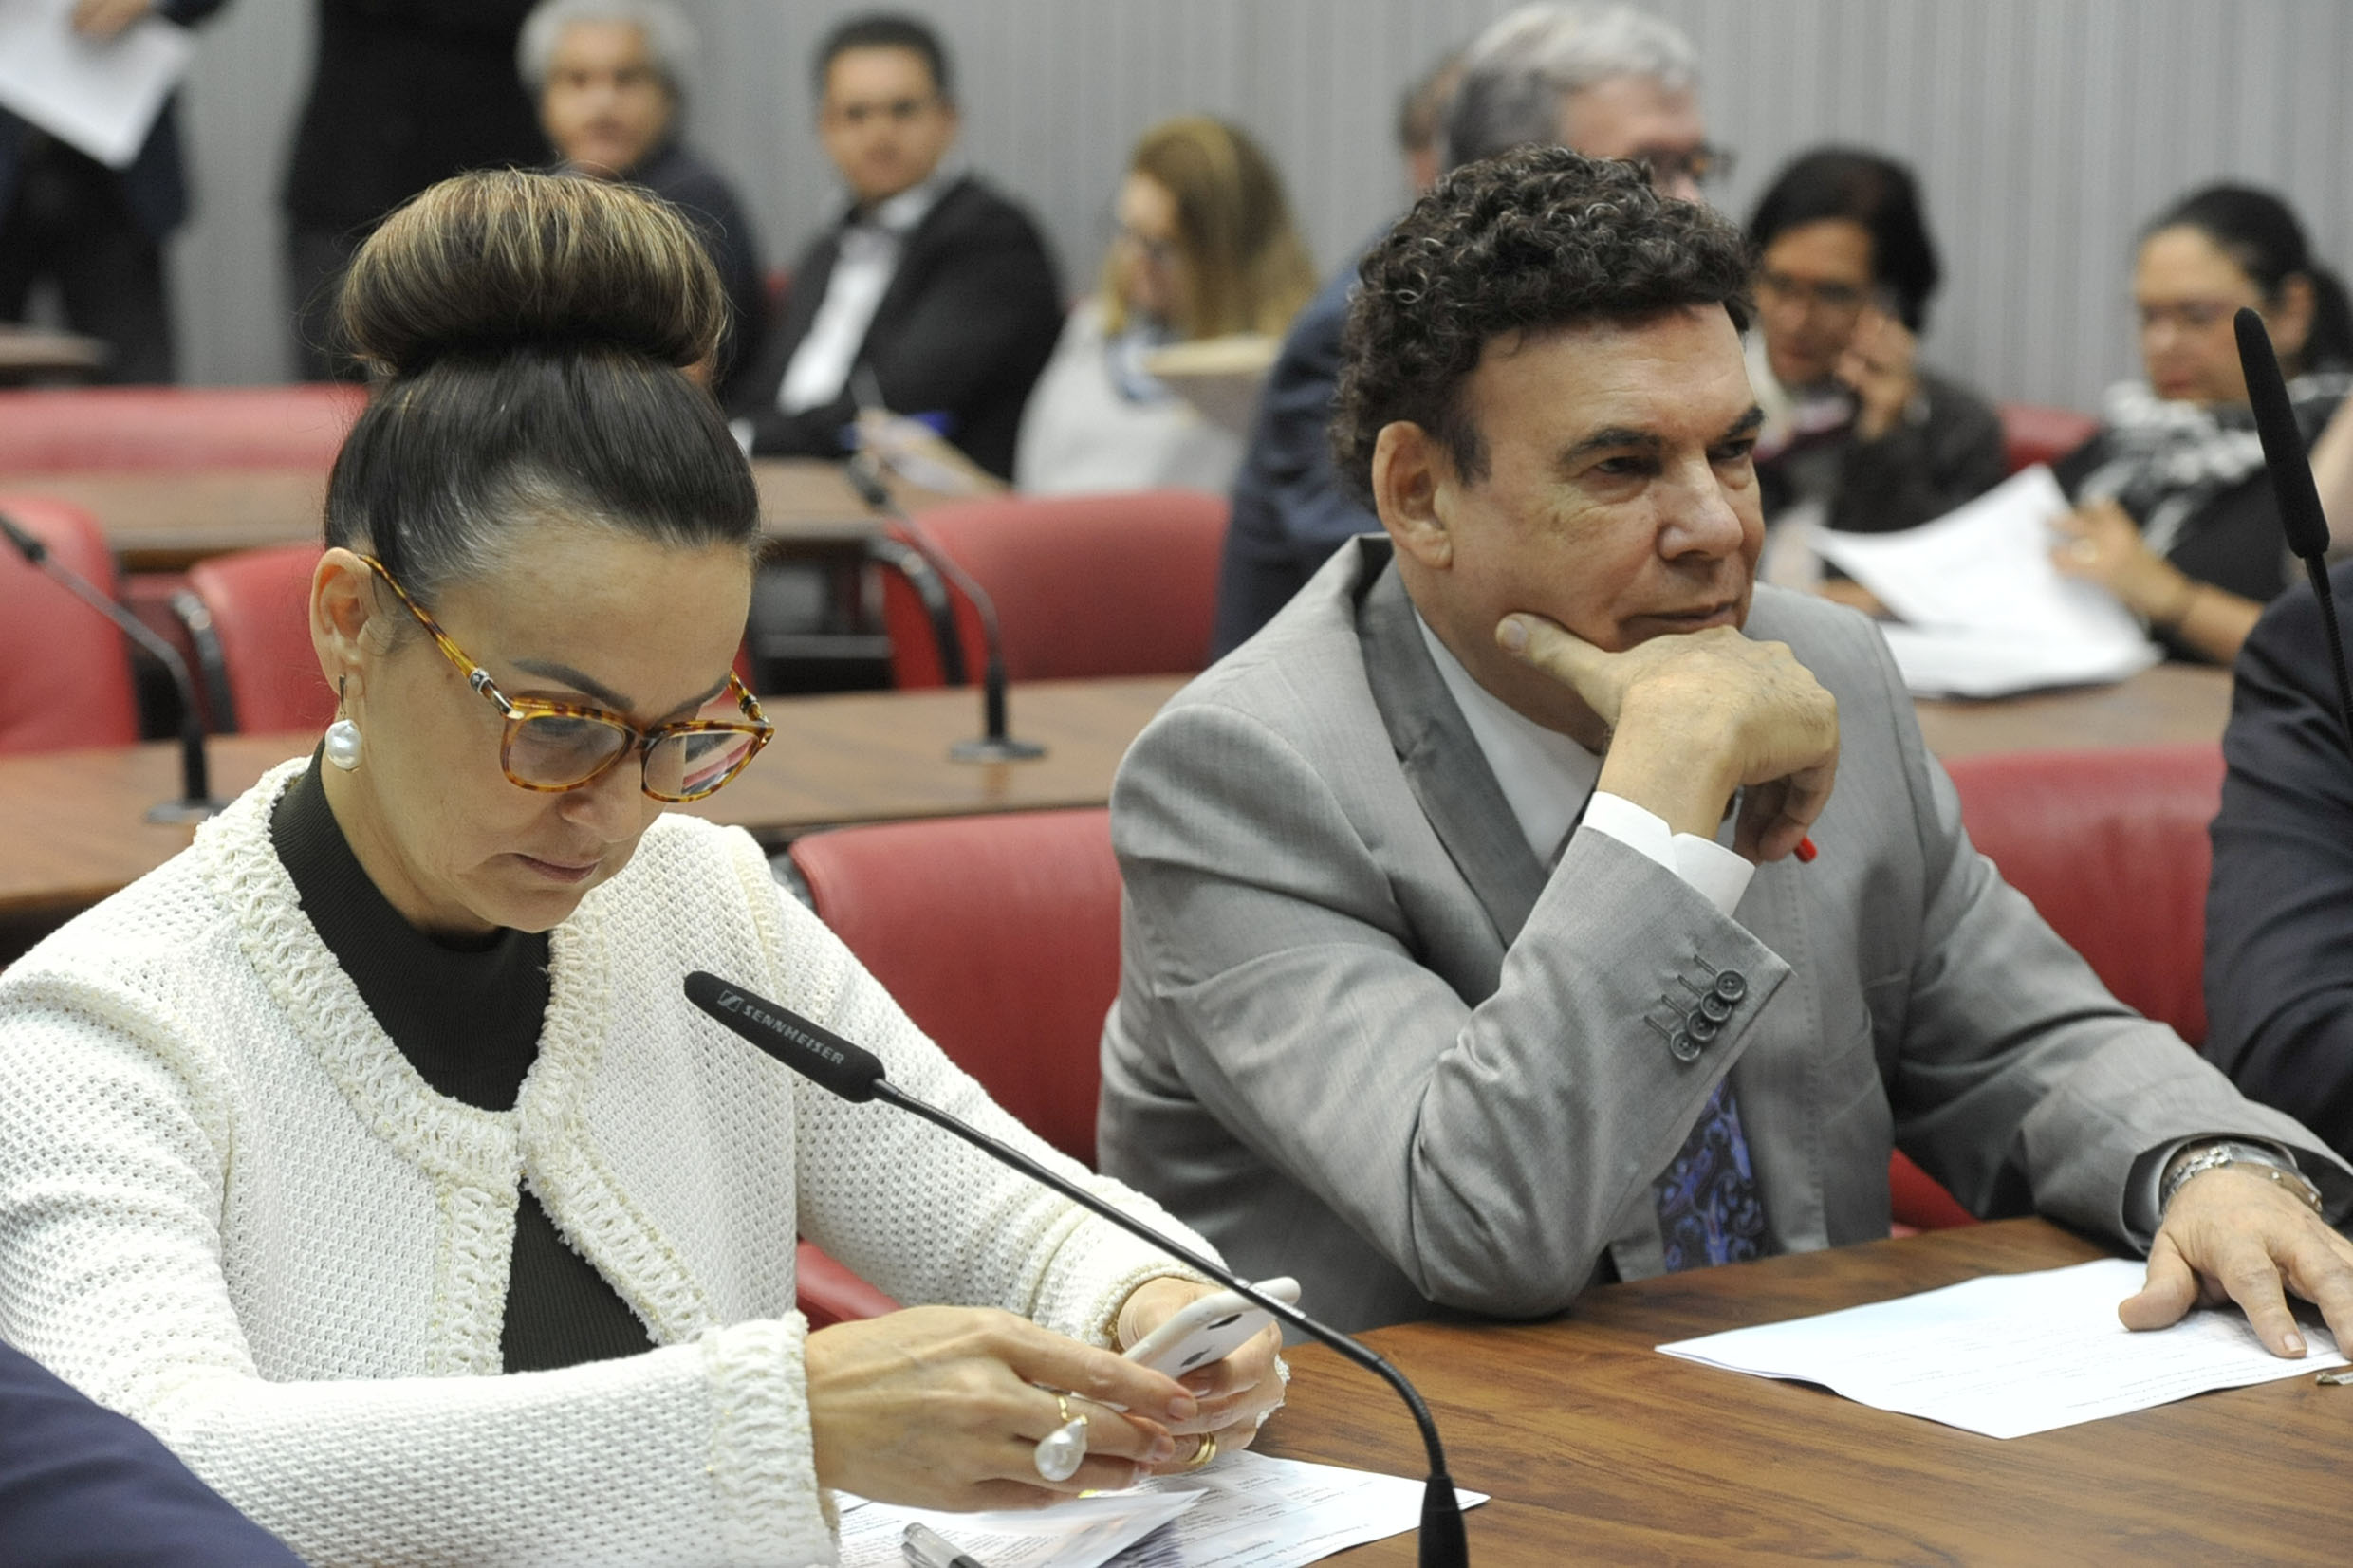 Analice Fernandes e Campos Machado<a style='float:right' href='https://www3.al.sp.gov.br/repositorio/noticia/N-06-2019/fg235743.jpg' target=_blank><img src='/_img/material-file-download-white.png' width='14px' alt='Clique para baixar a imagem'></a>